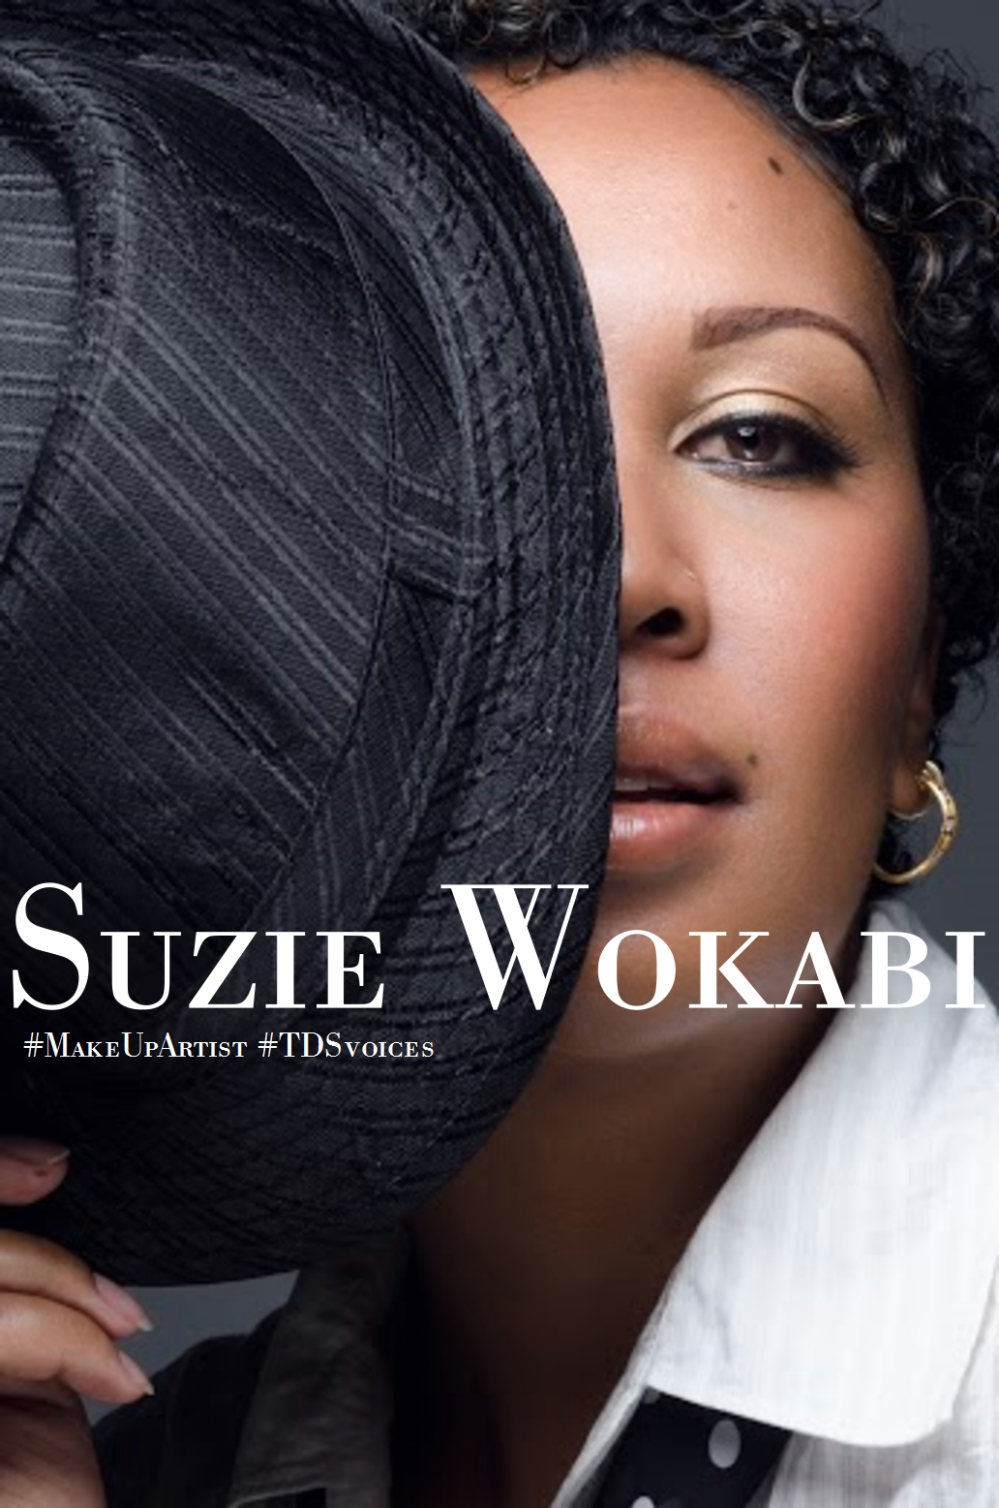 For the love for beauty and Africa: Suzie Wokabi #MakeUpArtist #TDSvoices